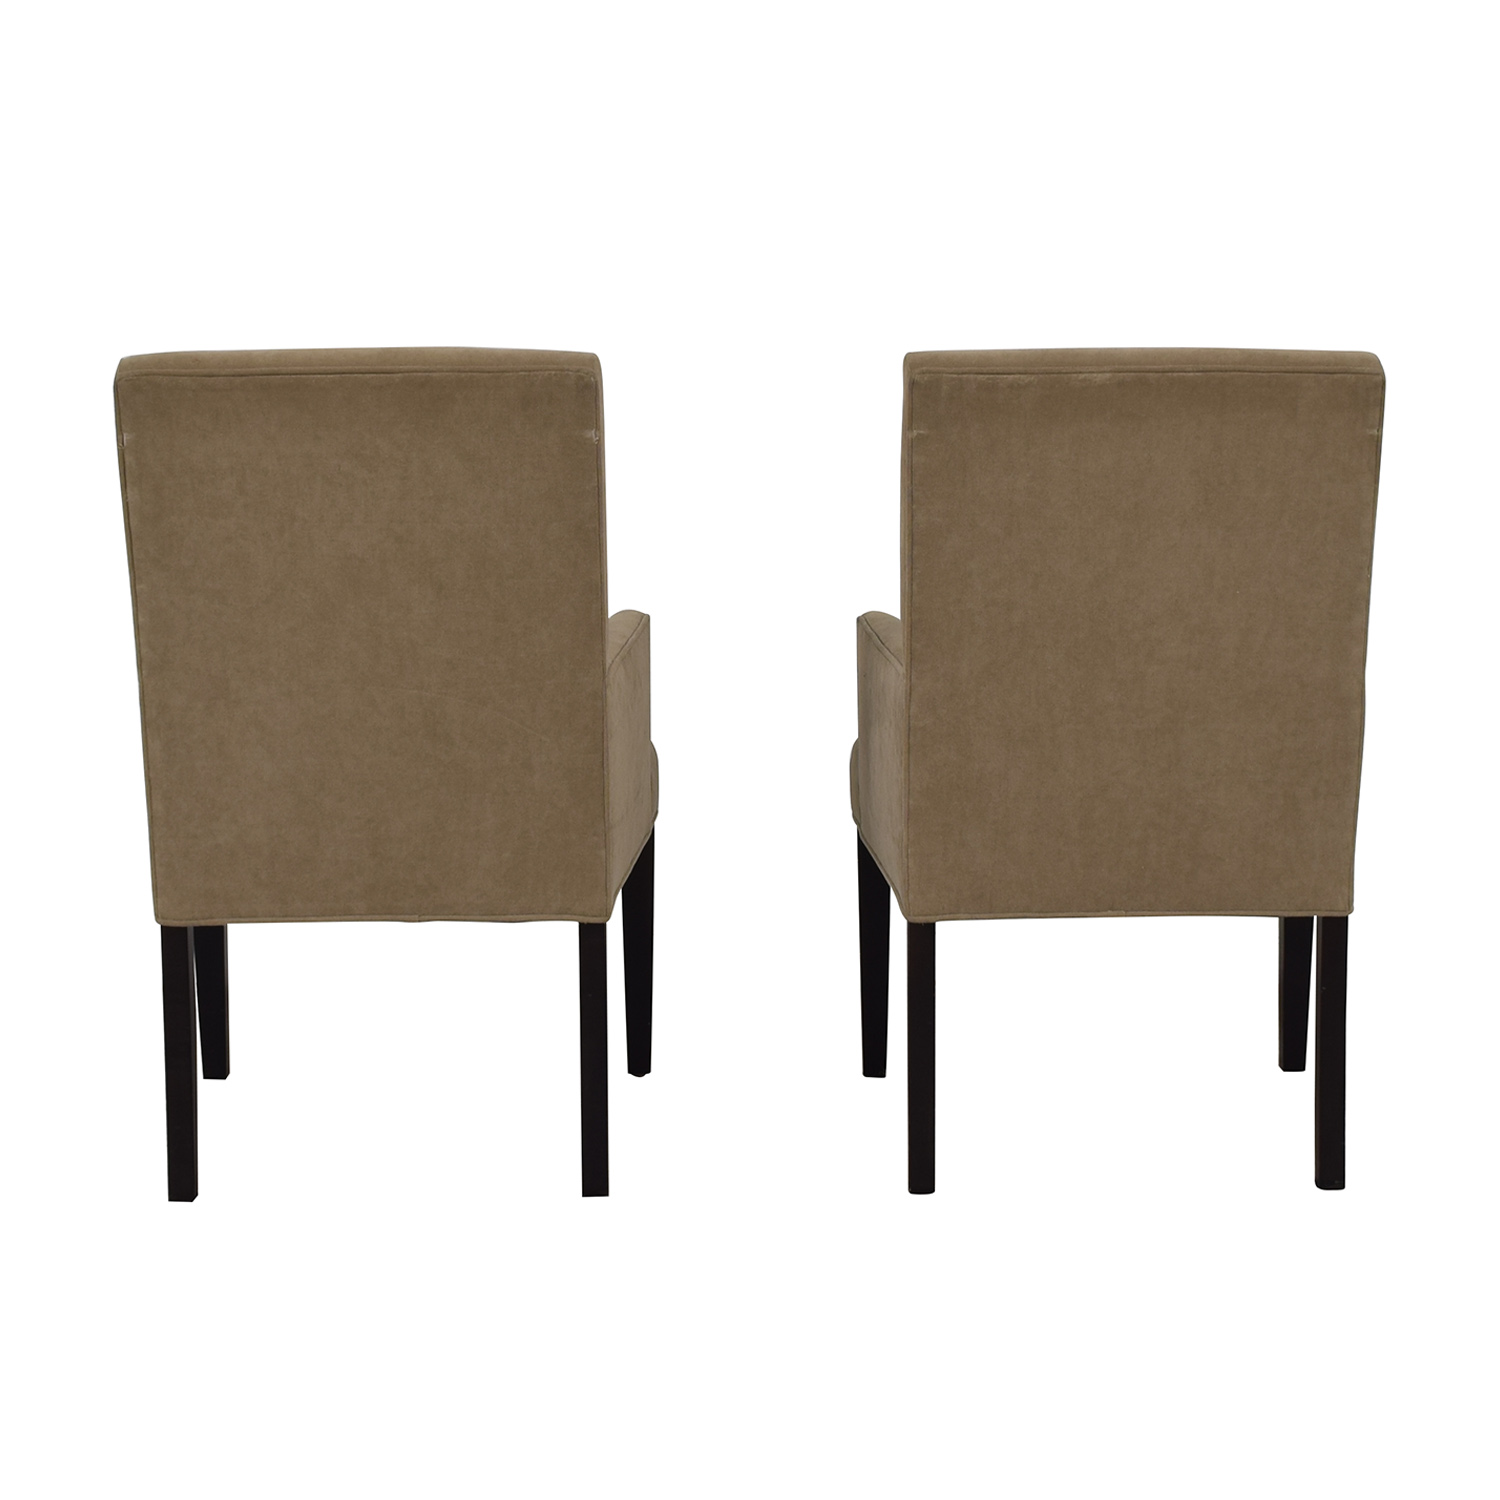 Crate & Barrel Crate & Barrel Tan Dining Chairs used